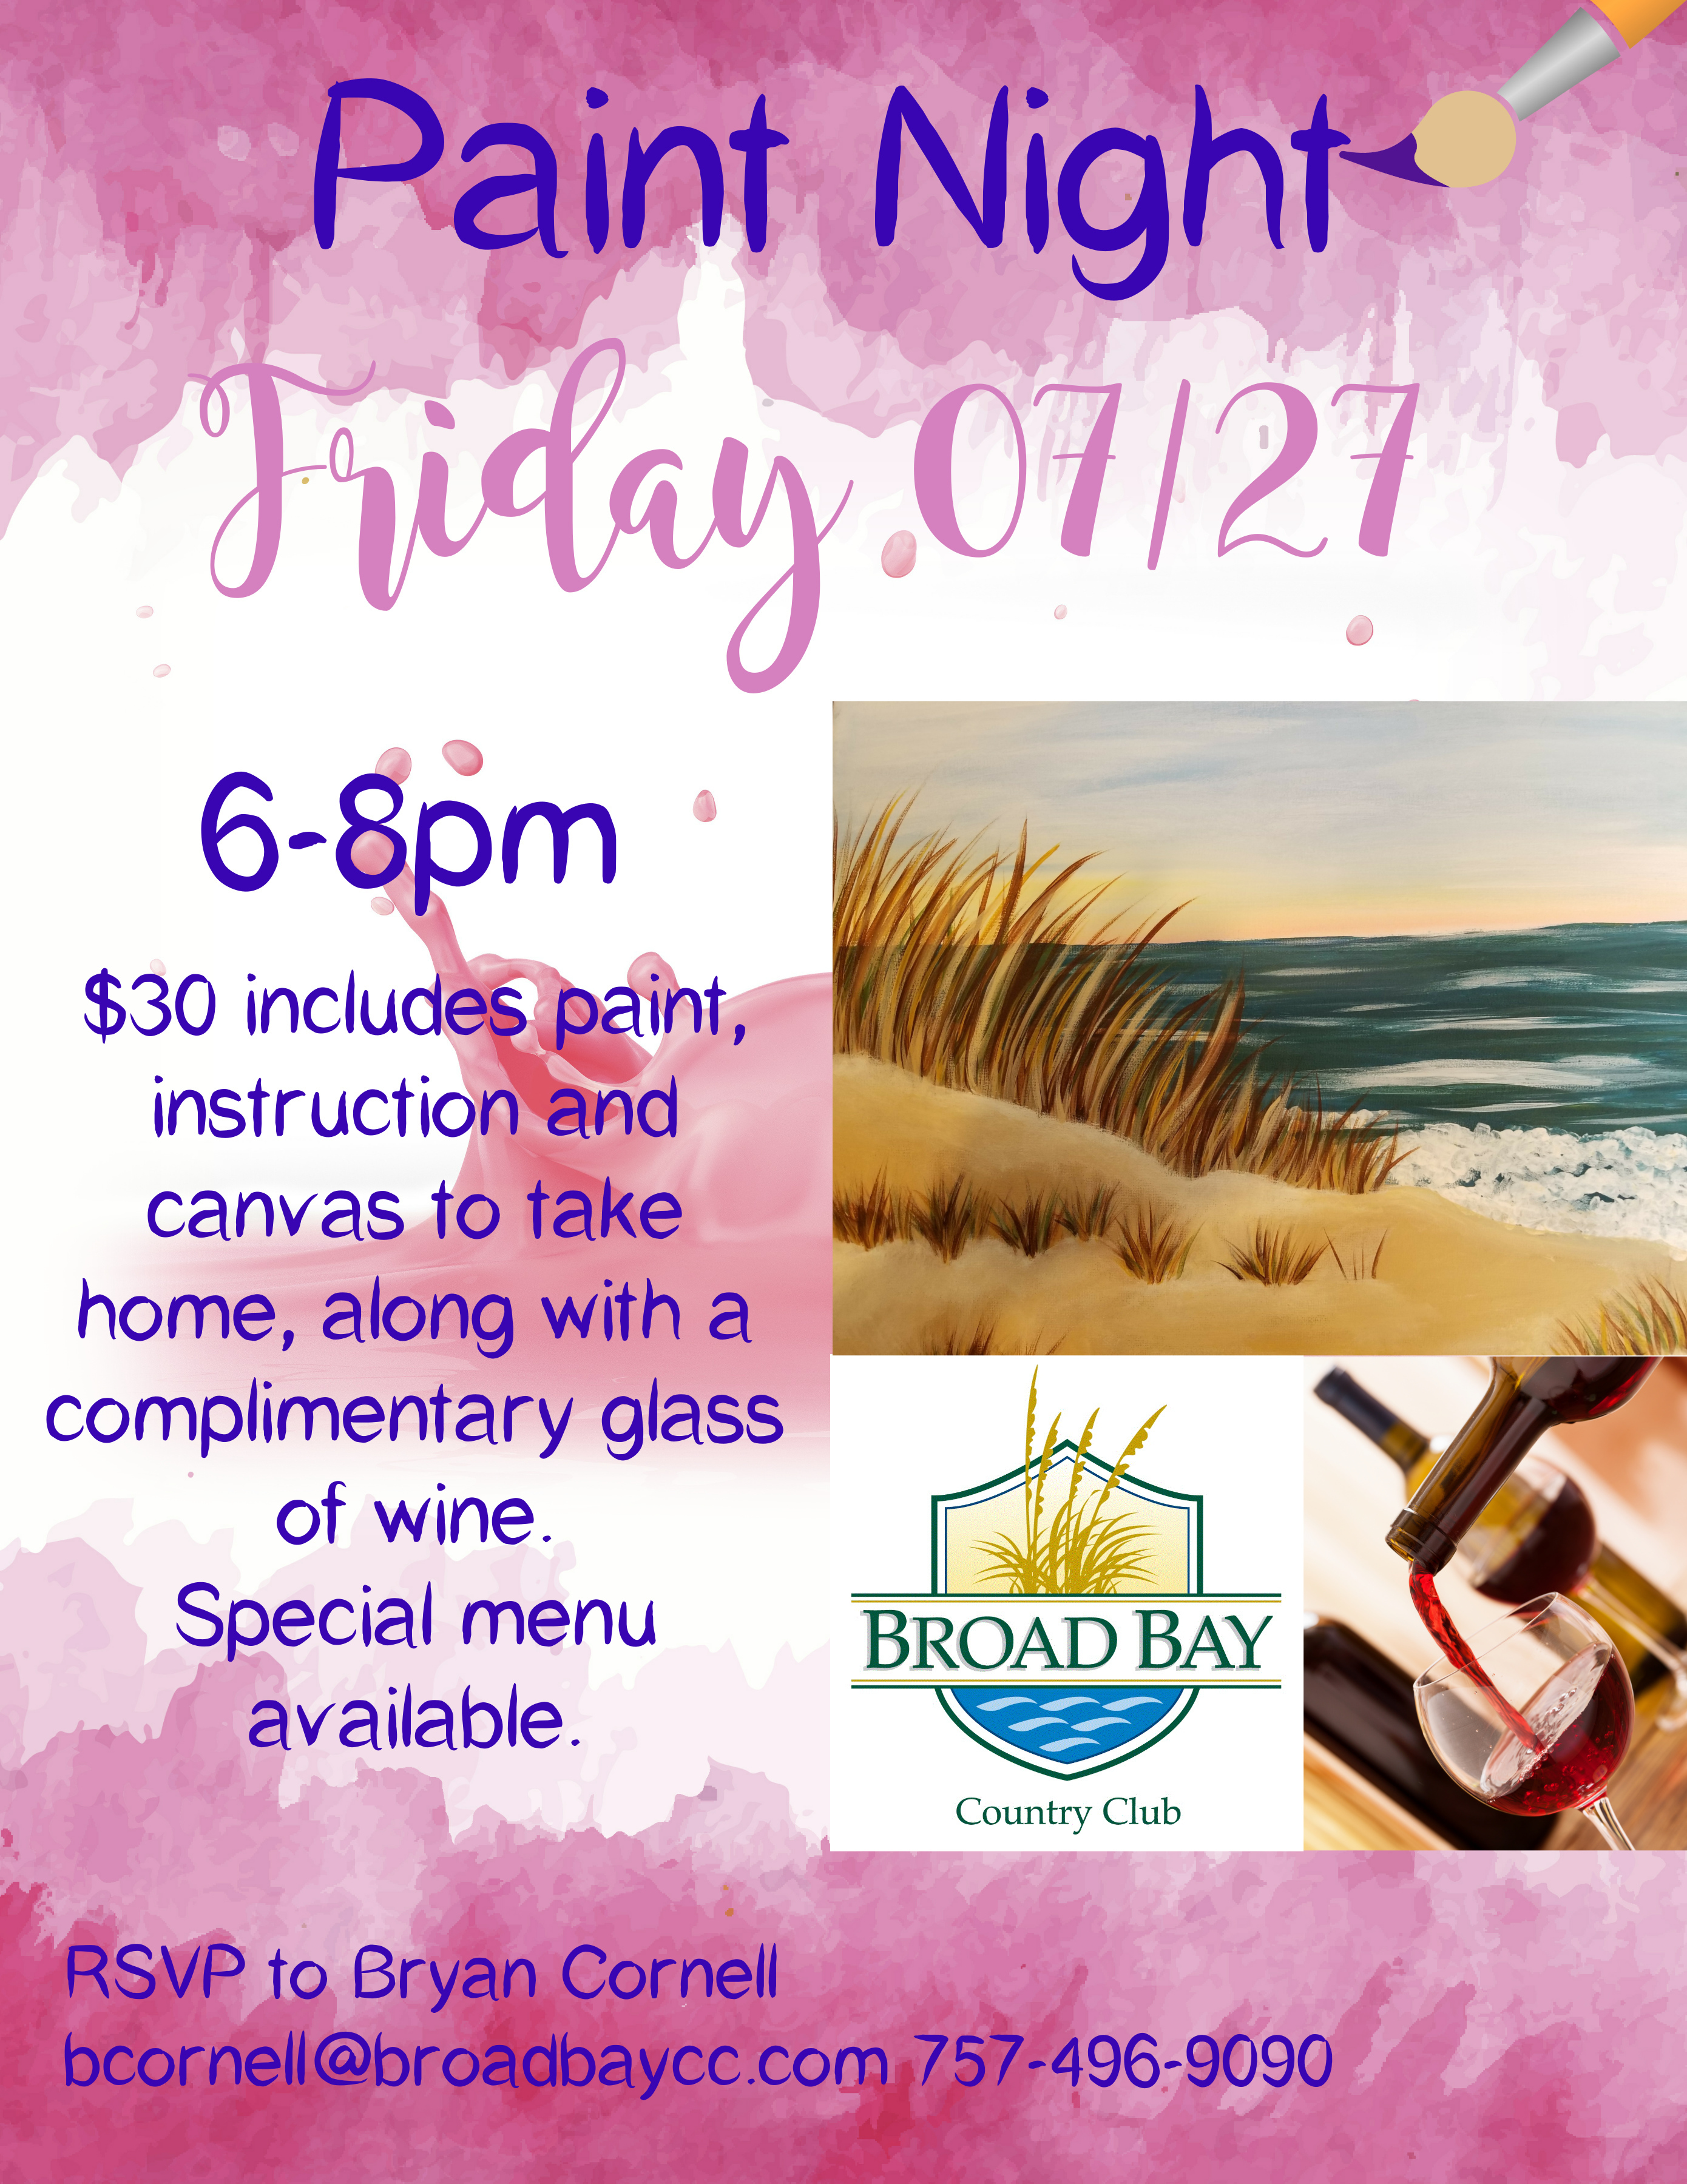 ladies paint night broad bay country club 2018 07 27